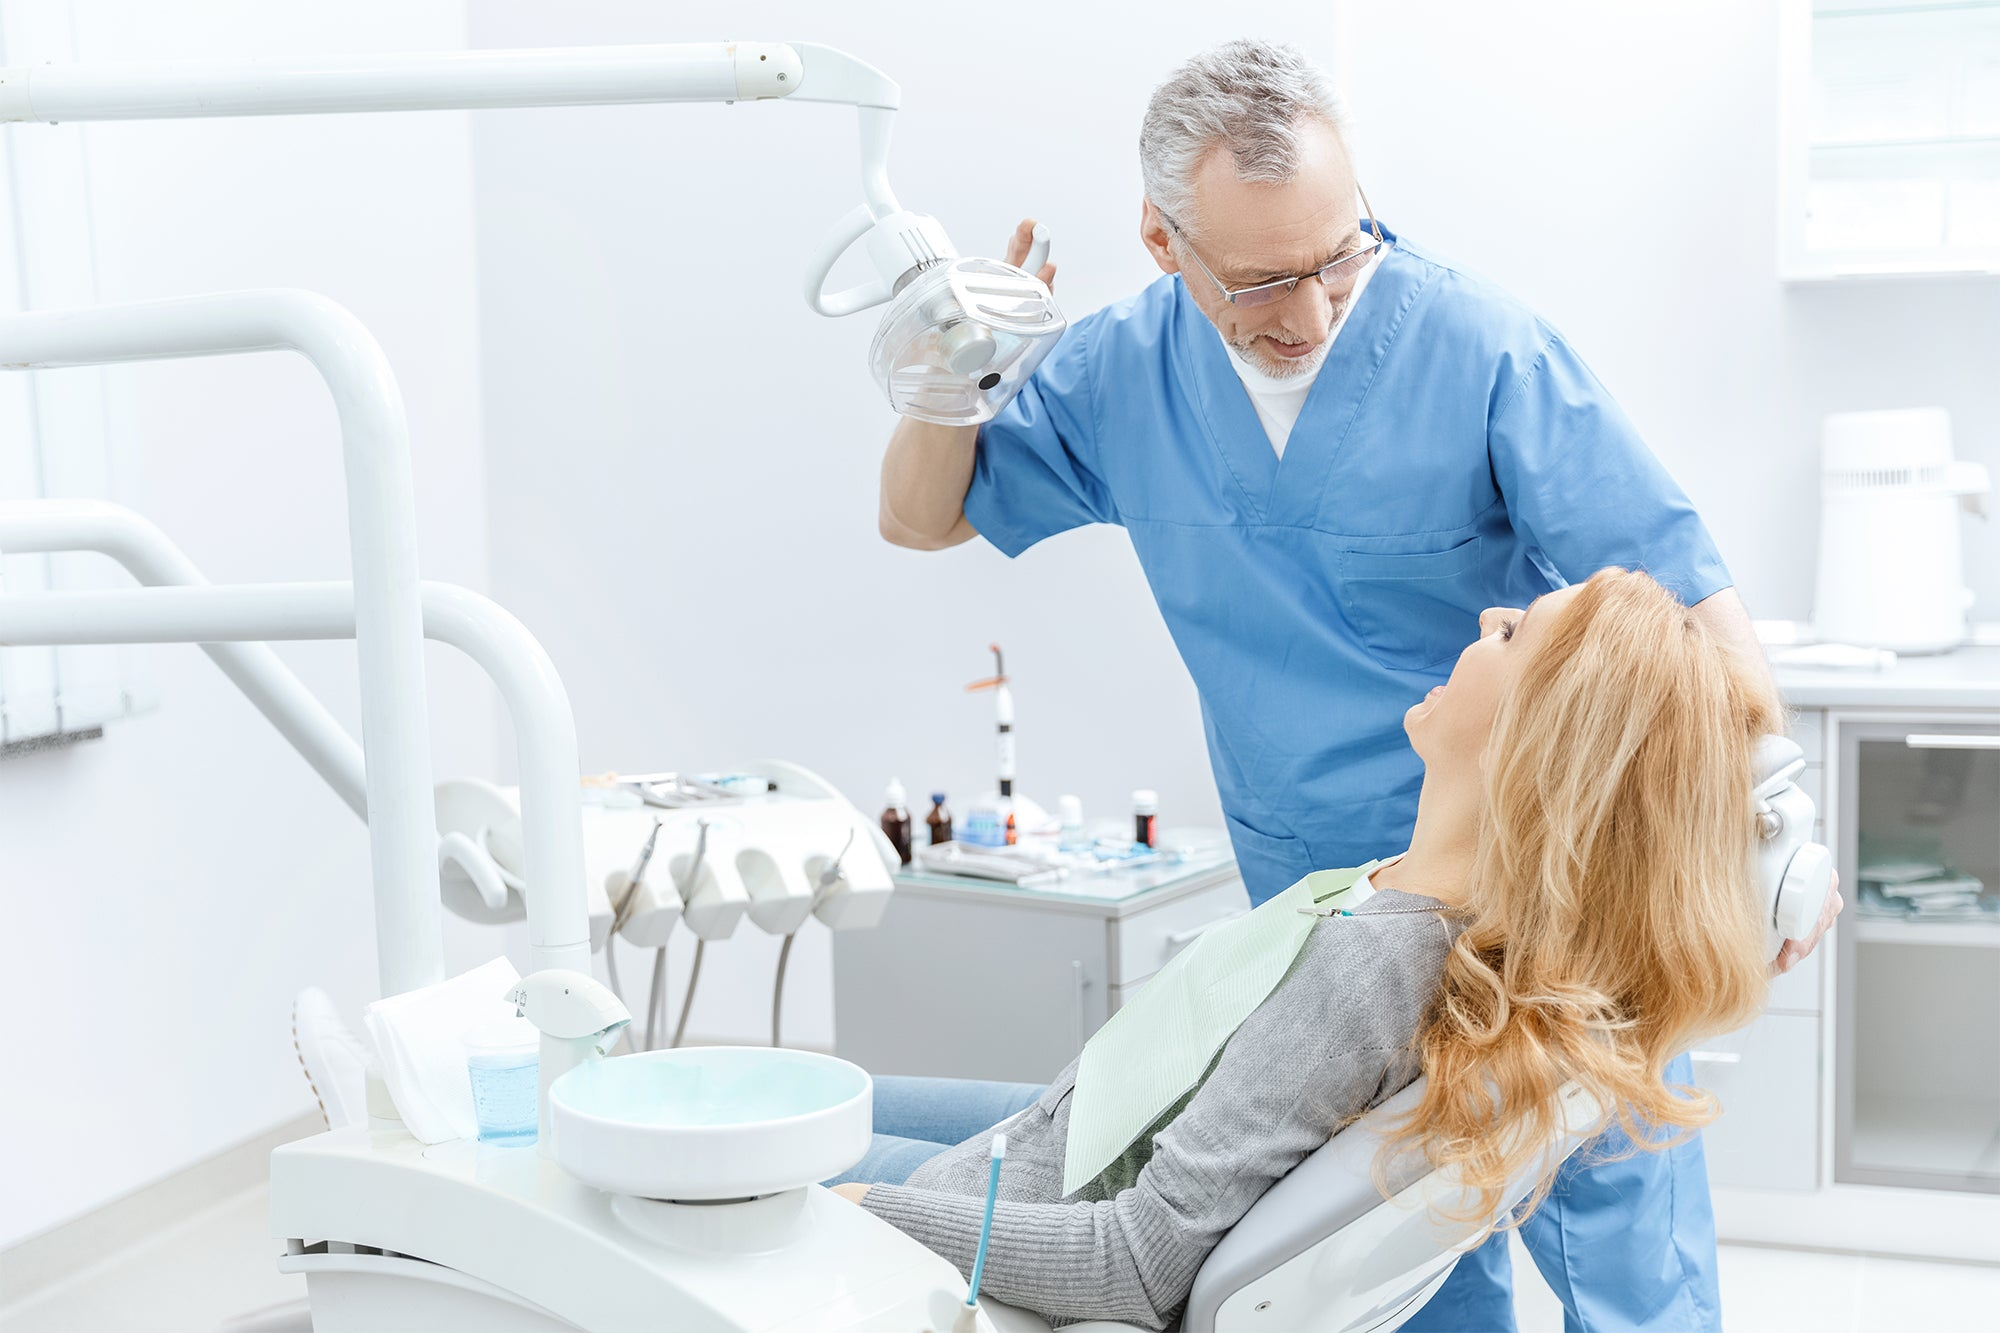 BioMedical-Dental Equipment Repair & Maintenance